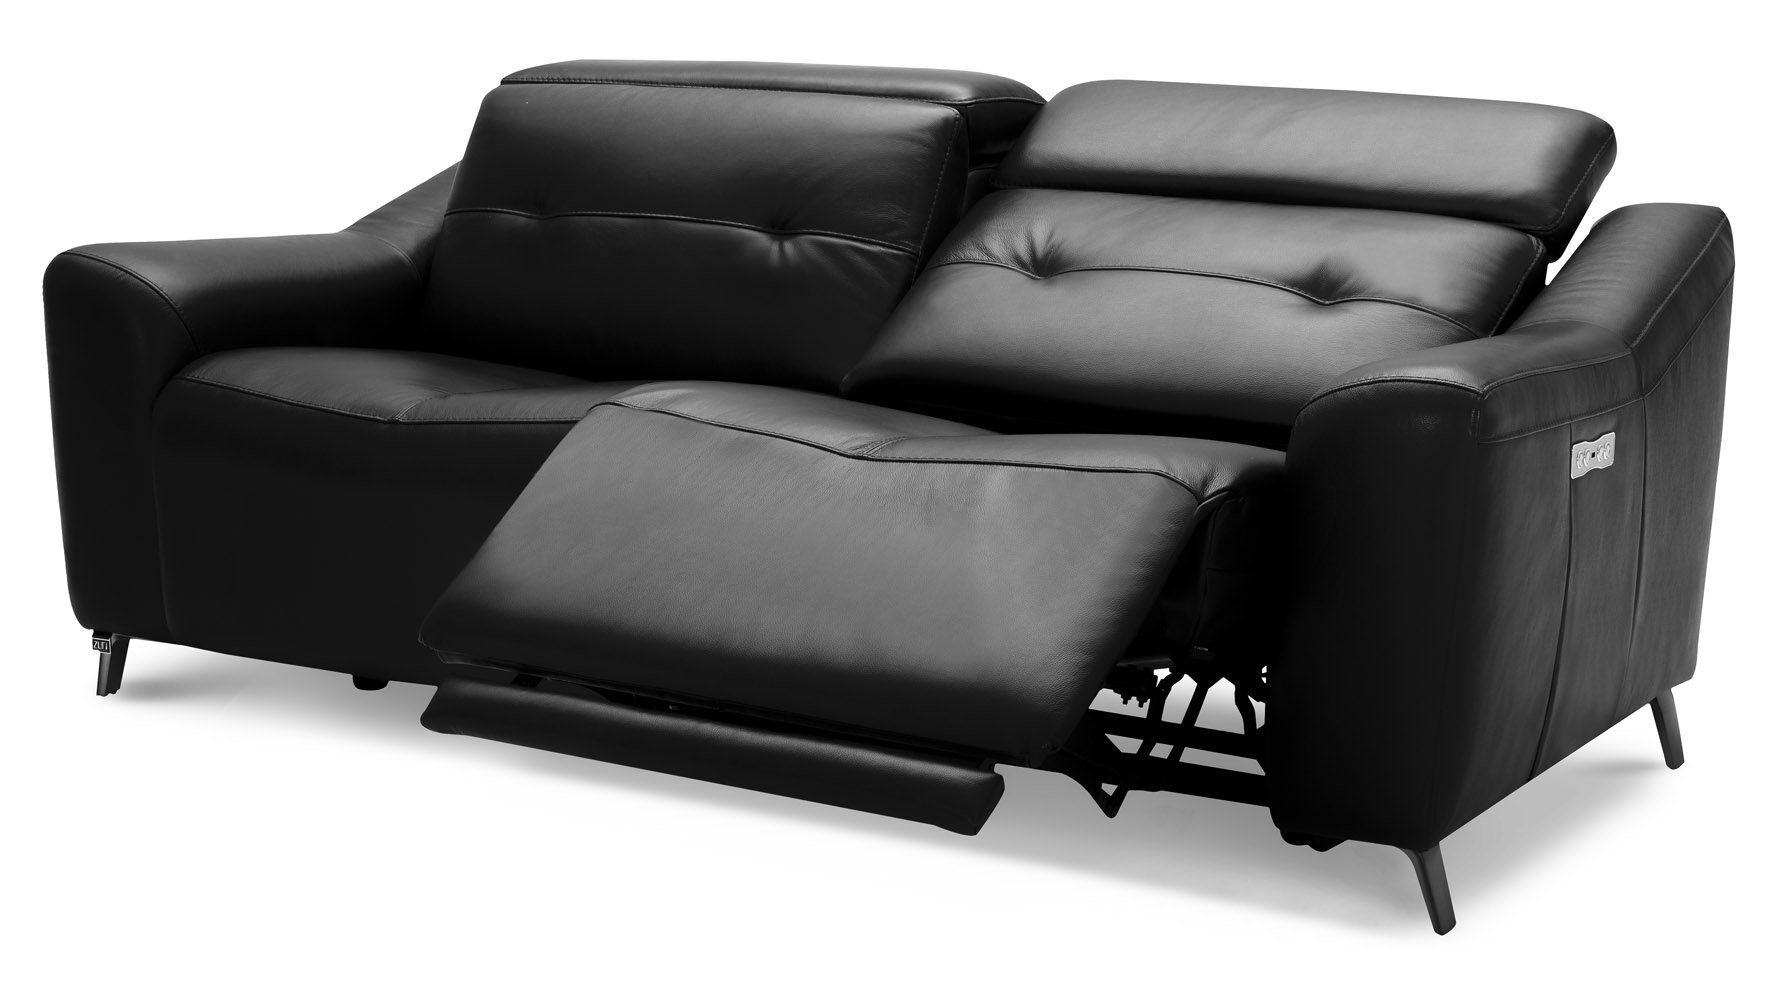 Linq Reclining Sofa Reclining Sofa Best Leather Sofa Leather Sofa